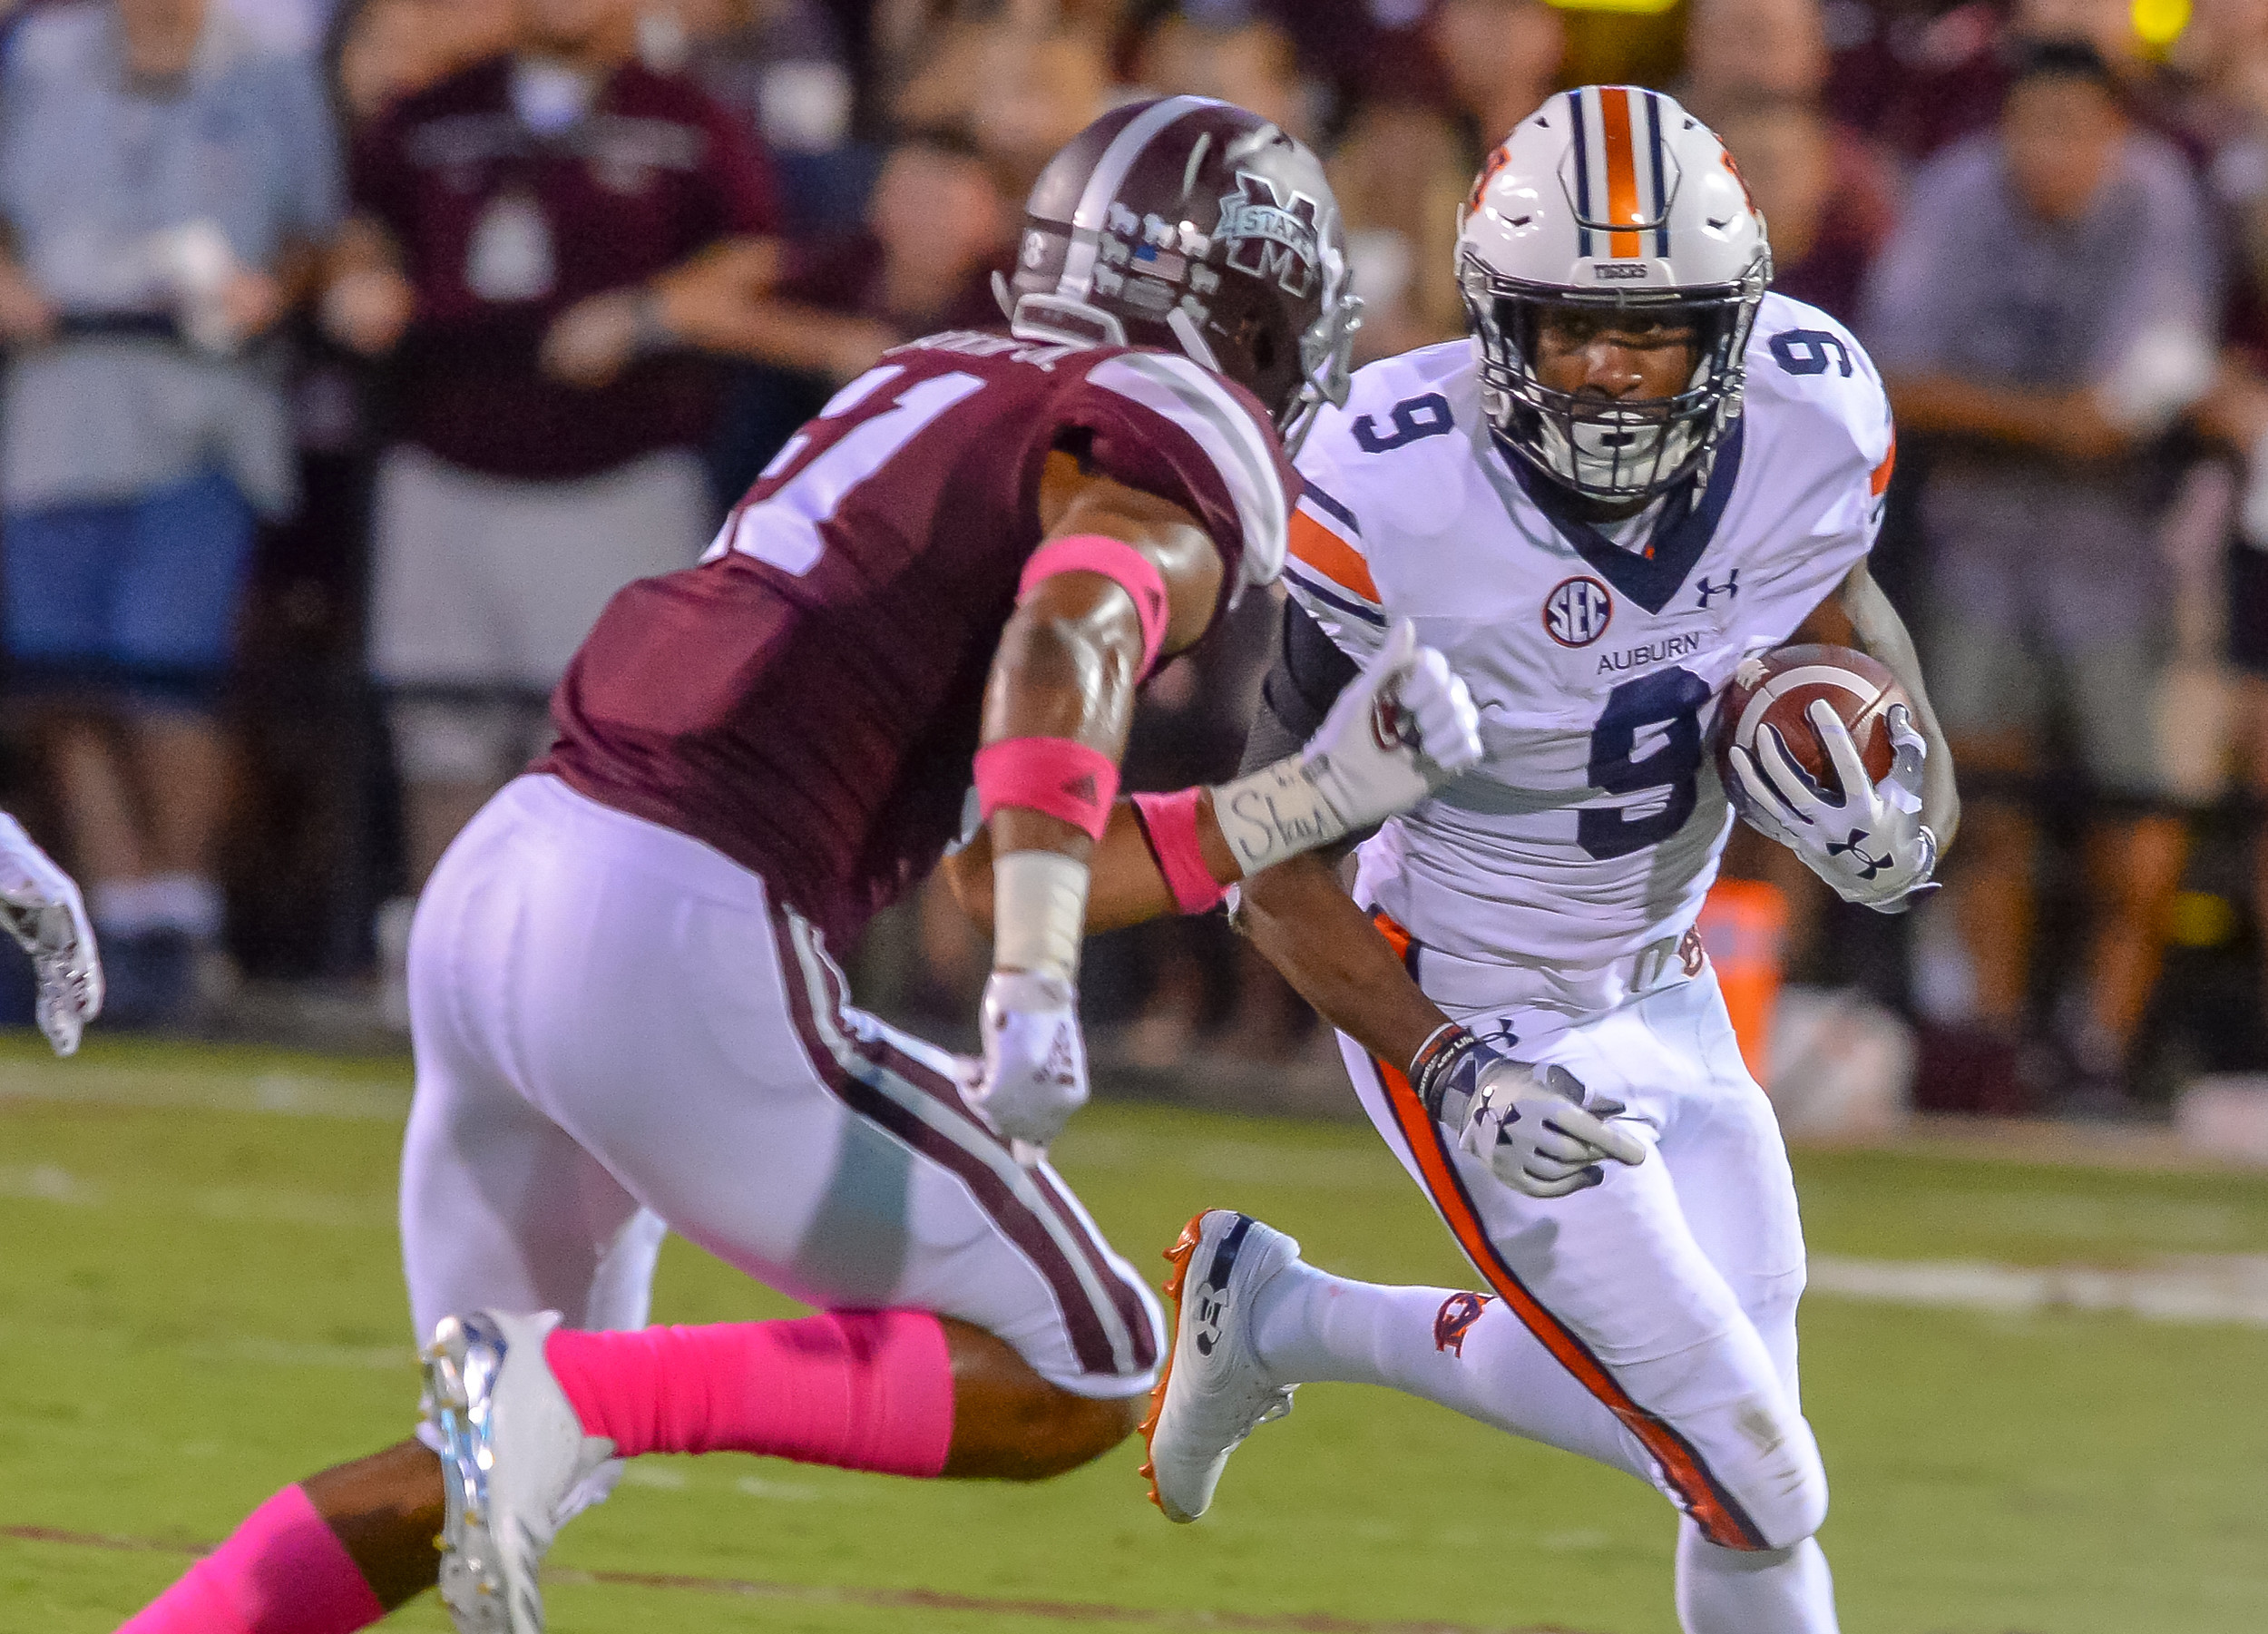 Auburn Tigers running back Kam Martin (9) looks to run  during the first half of Saturday's game, at Davis Wade Stadium in Starkville, MS. Daily Mountain Eagle -  Jeff Johnsey